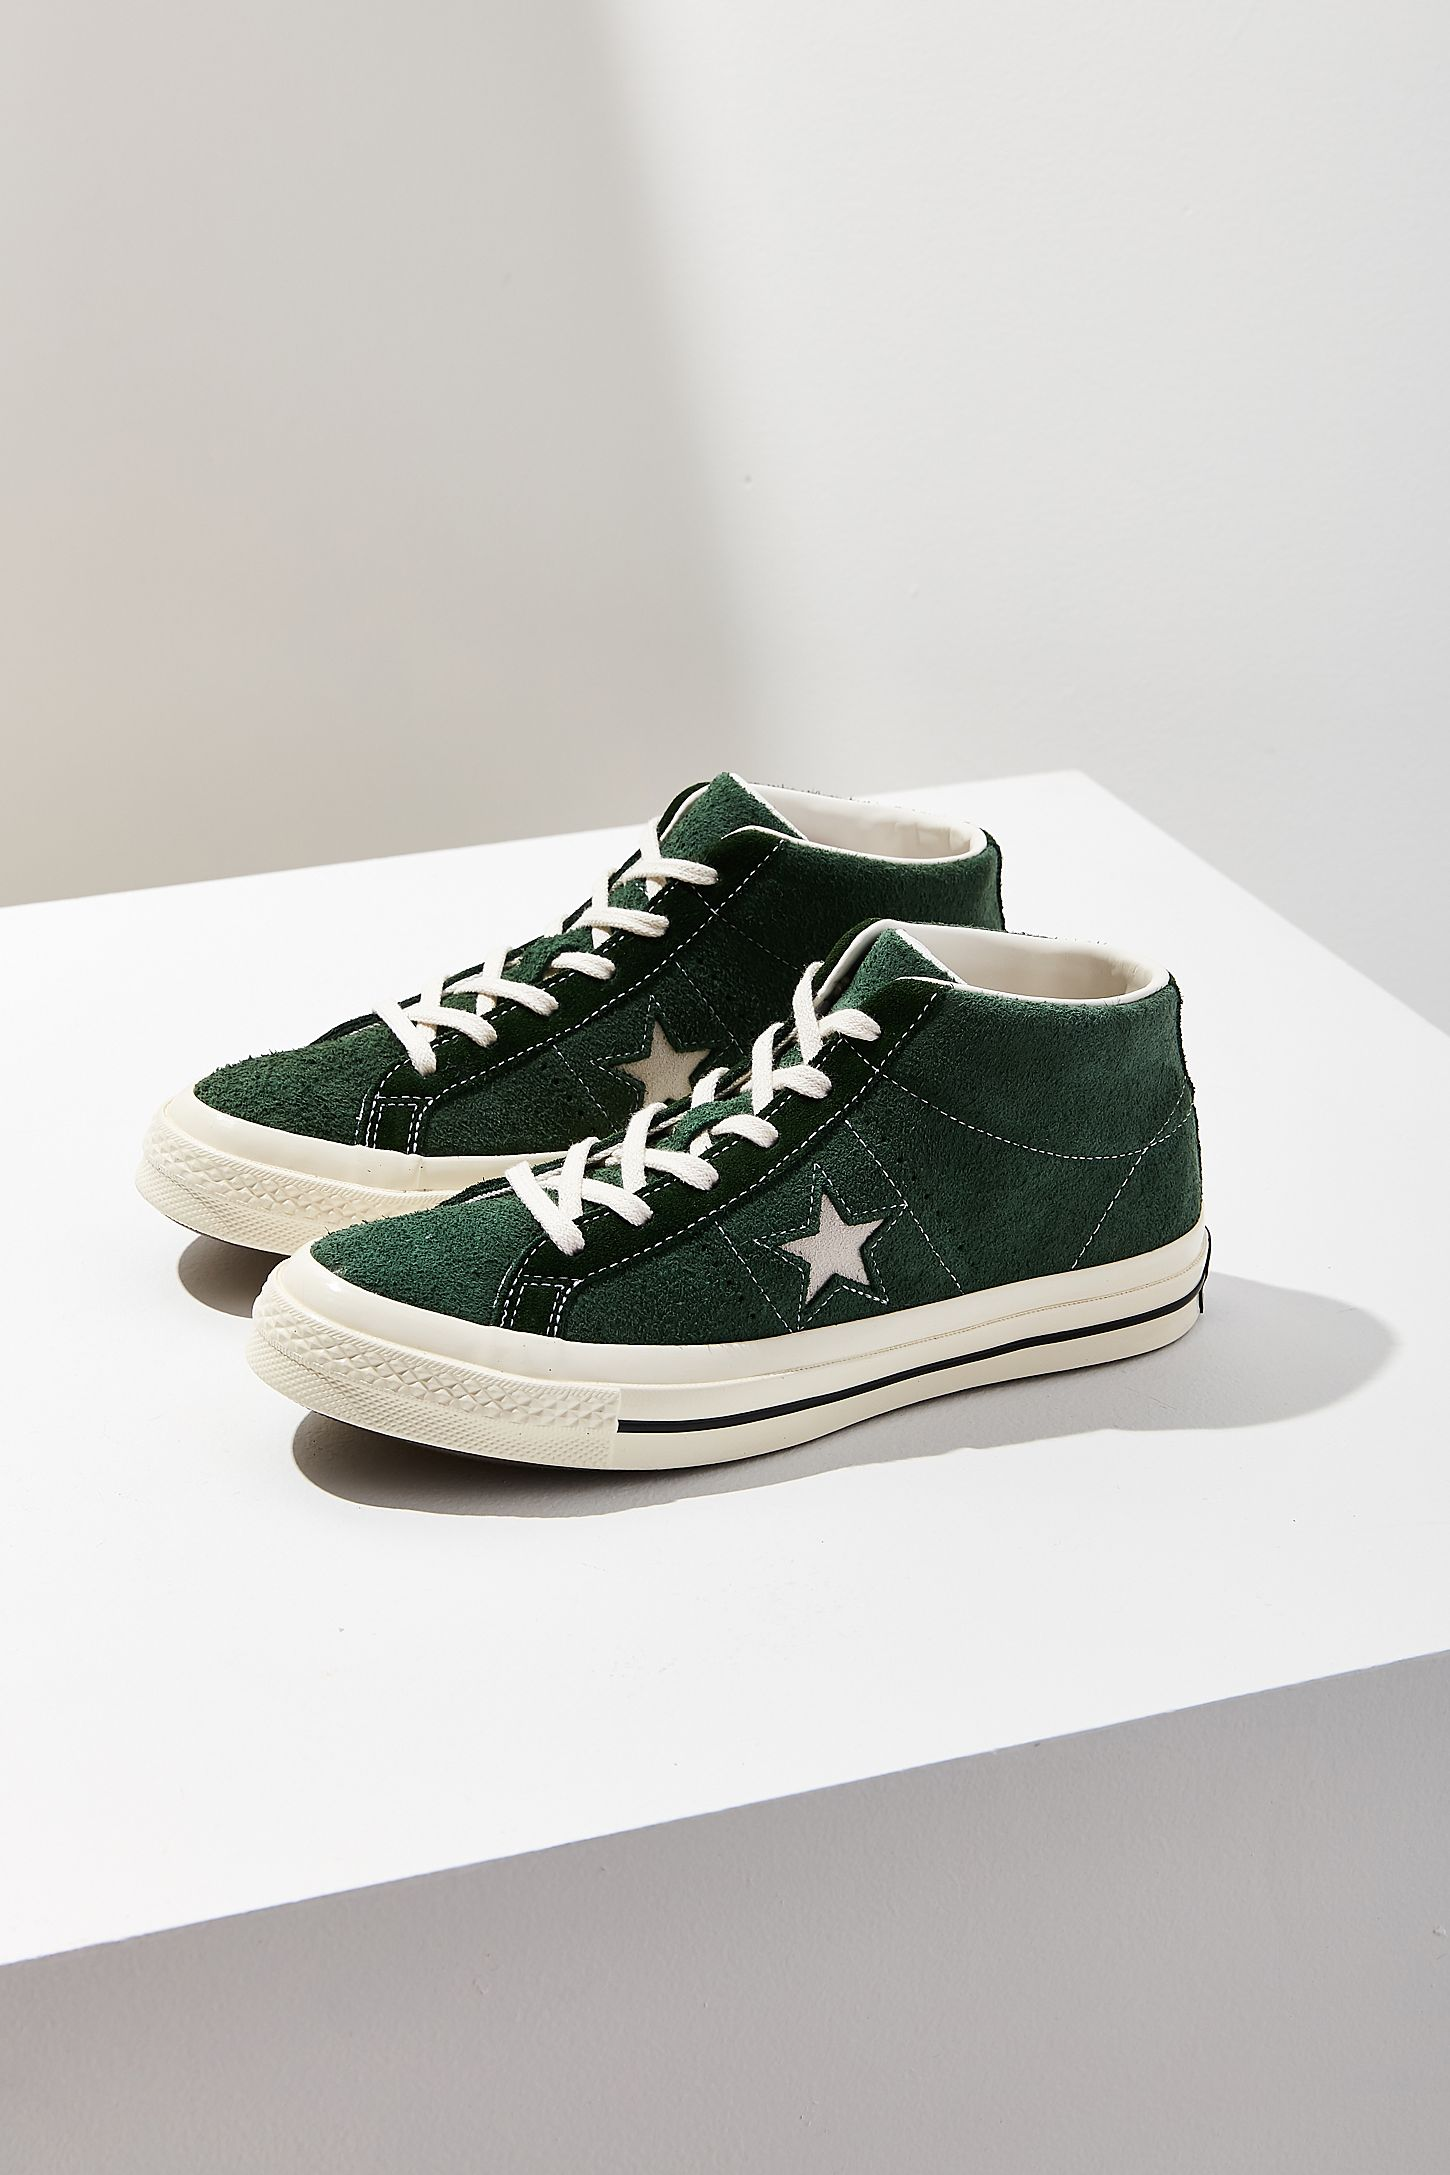 7a42a4ab6d99 Converse Cons One Star Pro Suede Mid Top Sneaker. Tap image to zoom. Hover  to zoom. Double Tap to Zoom